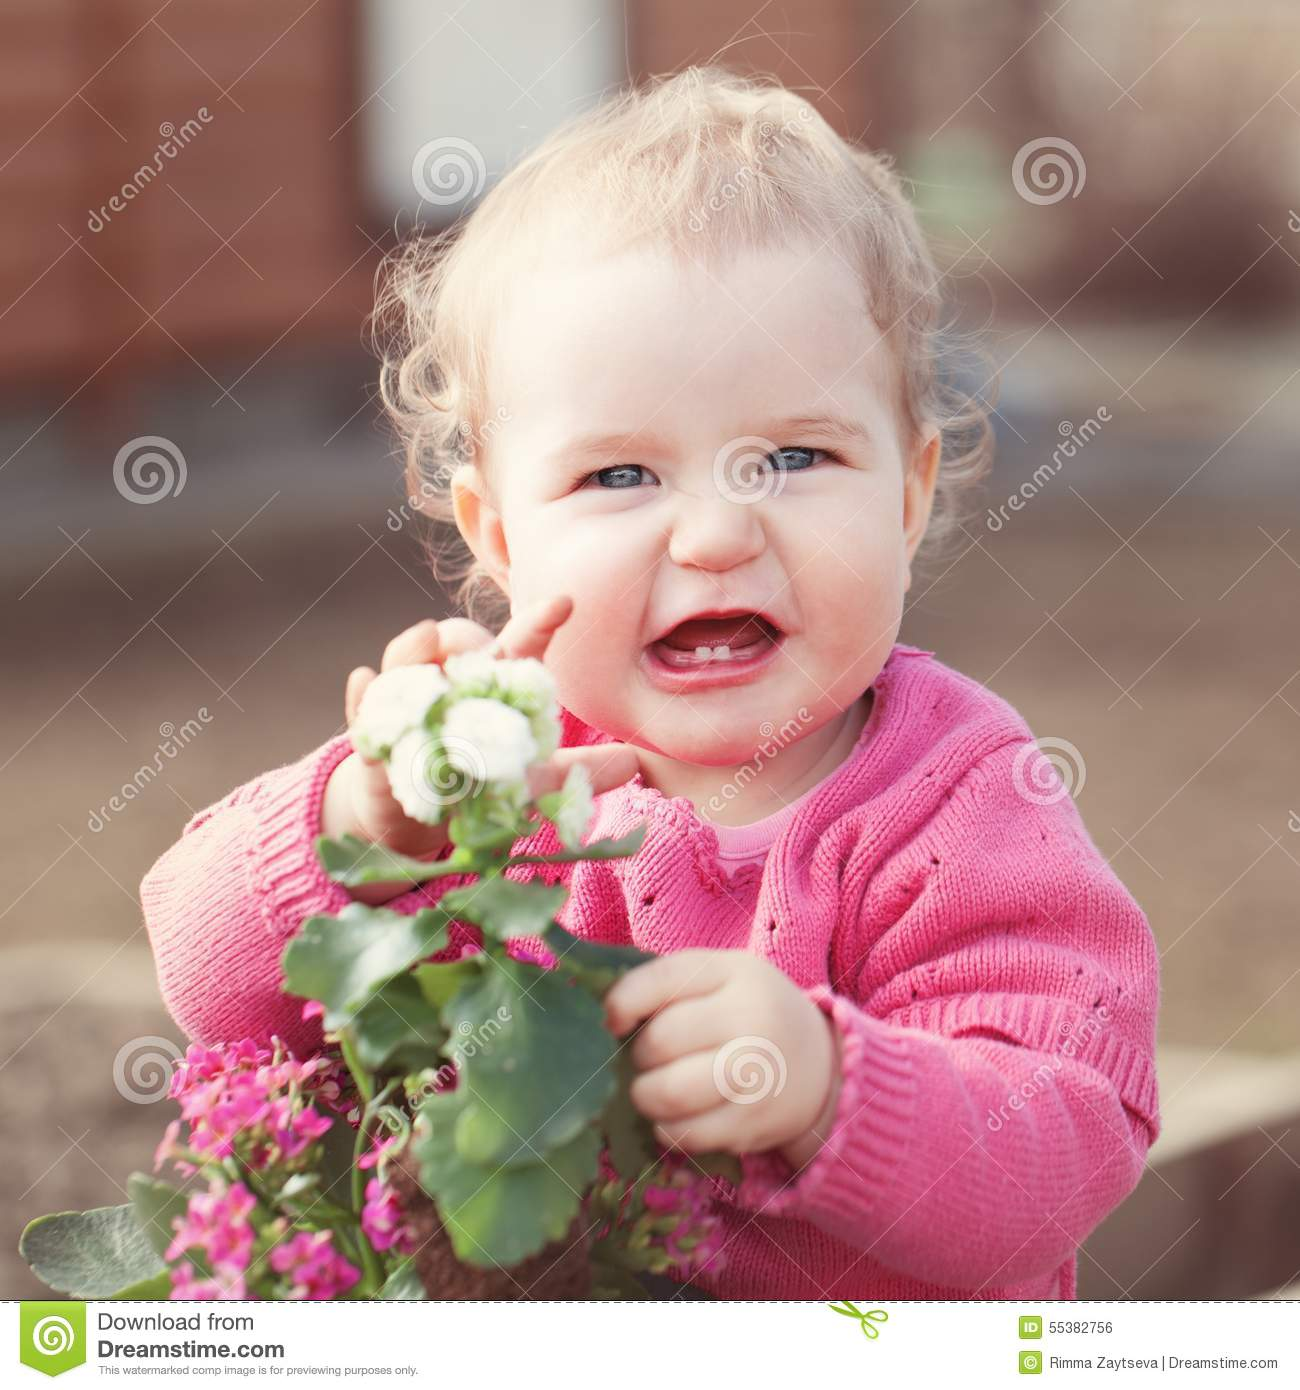 cute baby girl in pink dress puts flowers stock photo - image of